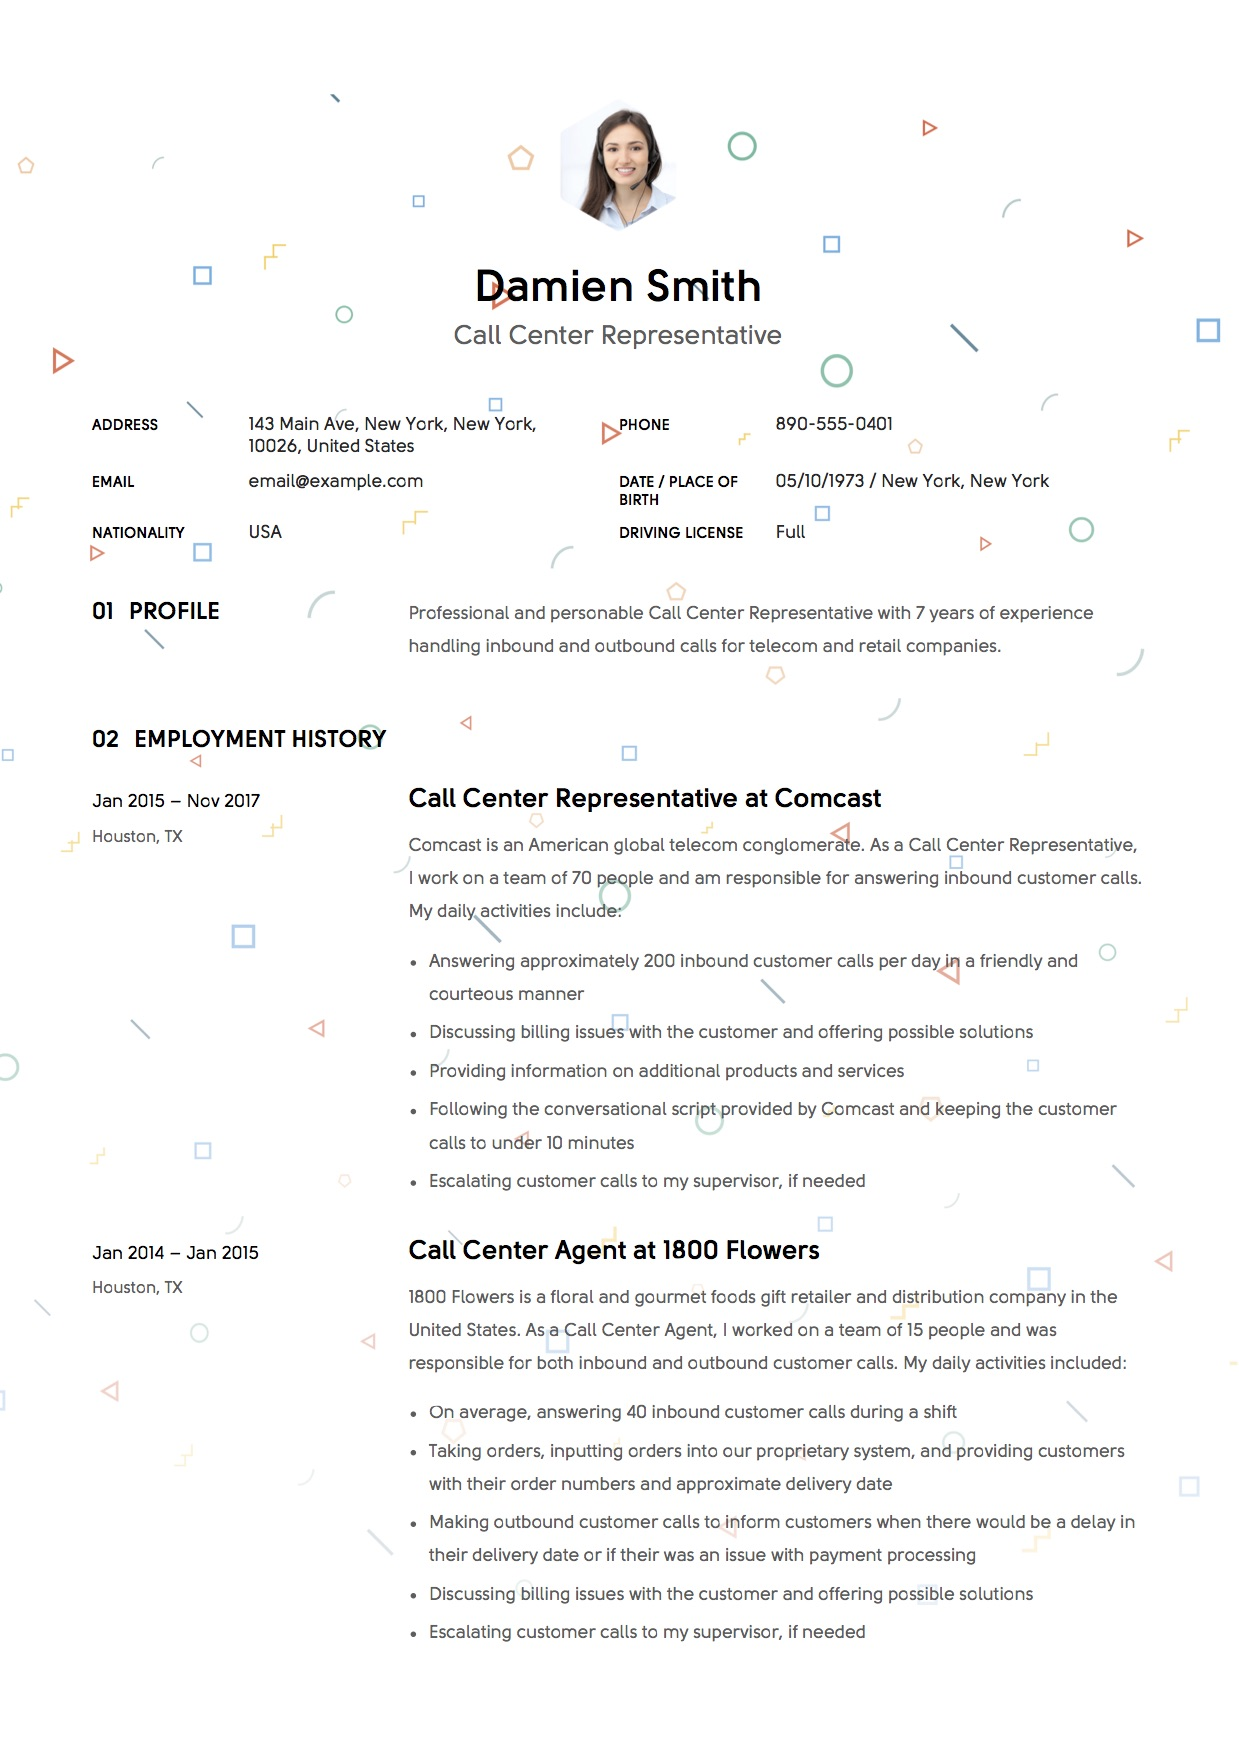 Template Resume - Call Center Representative